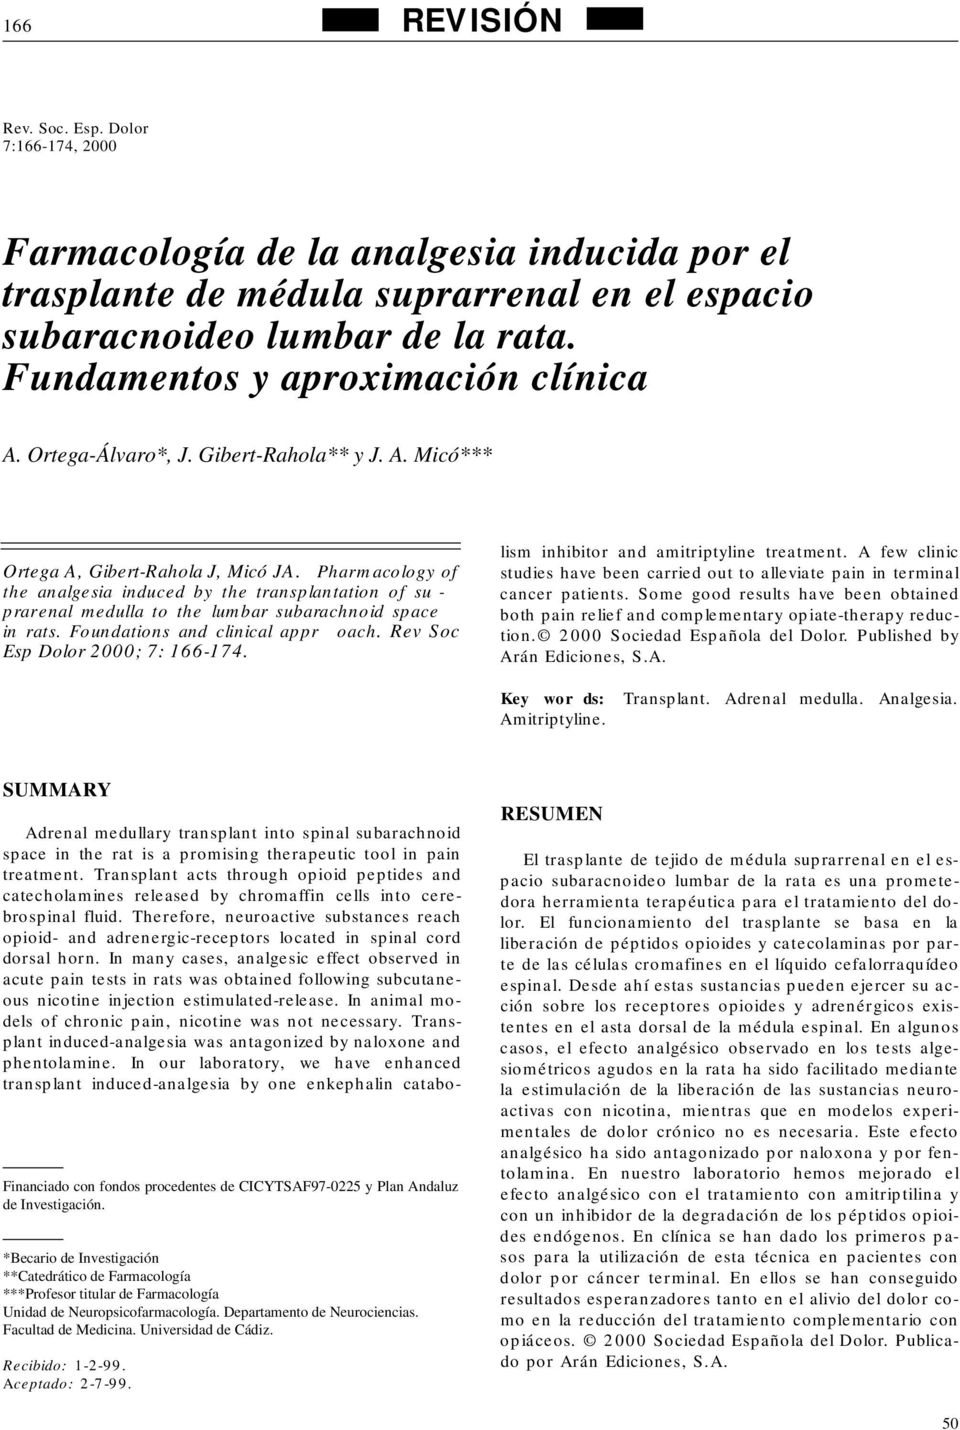 P h a rmacology of the analgesia induced by the transplantation of su - p r a r enal medulla to the lumbar subarachnoid space in rats. Foundations and clinical appr o a c h.